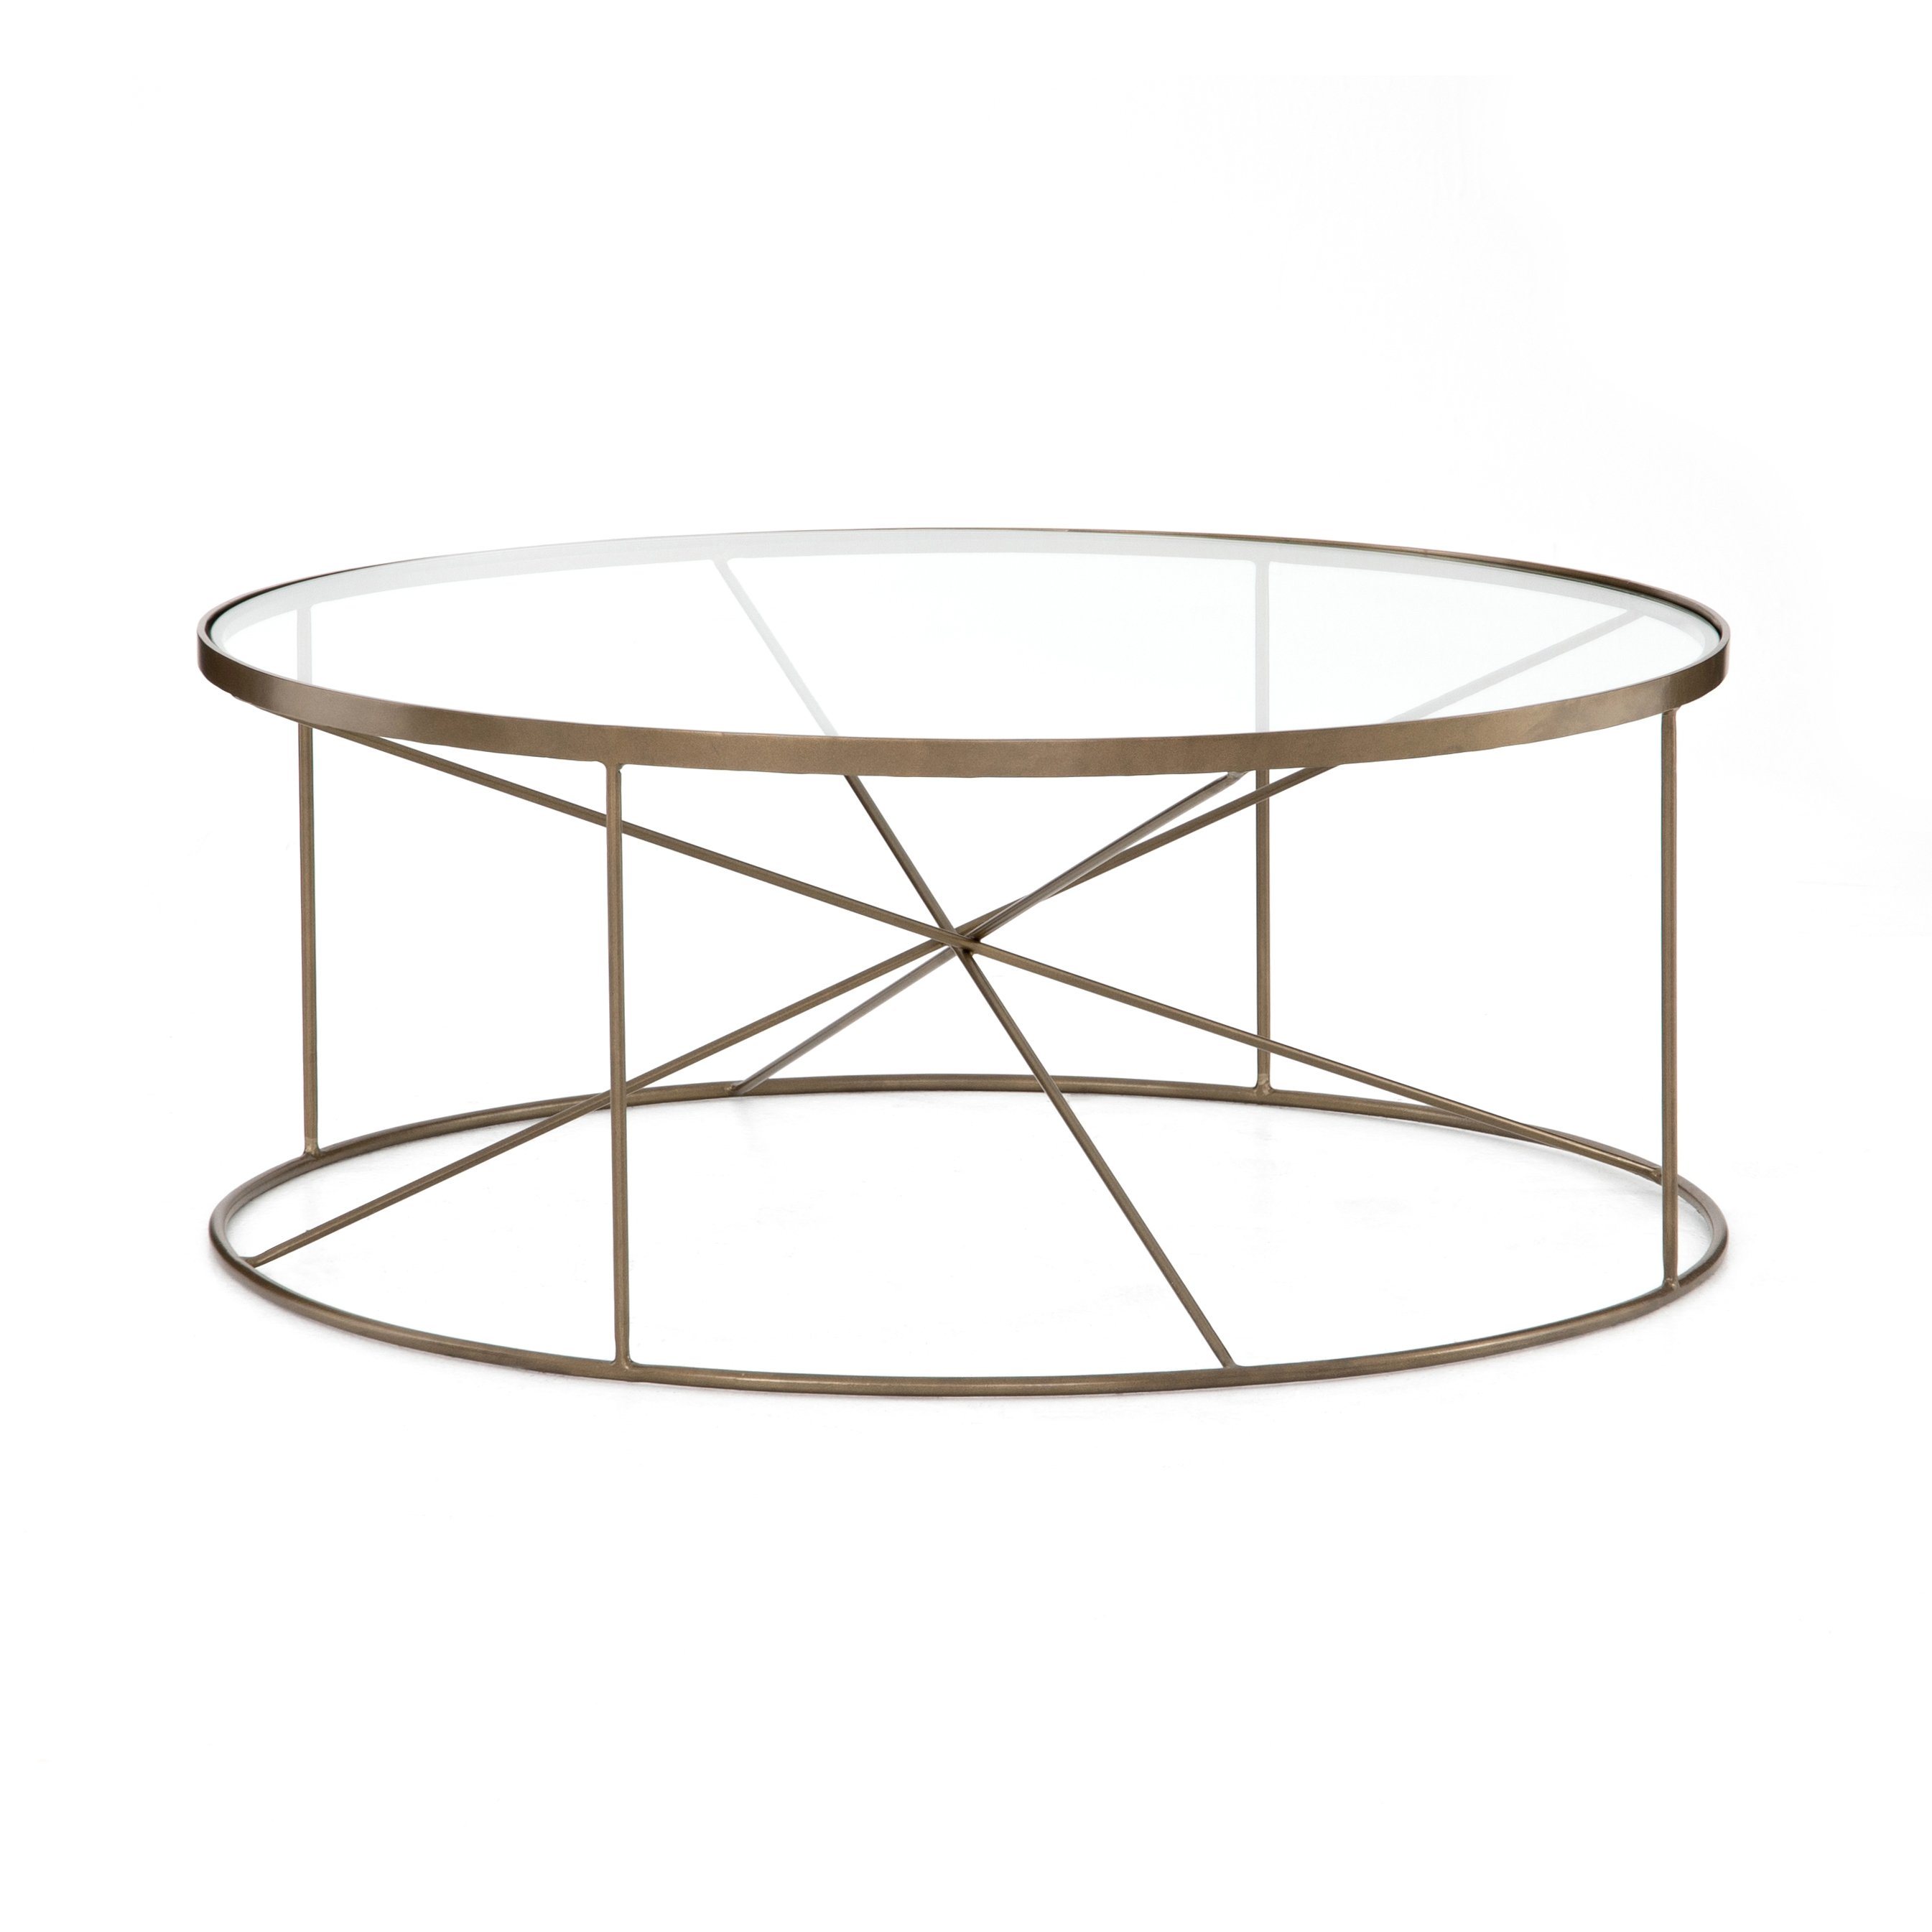 Lucas Round Coffee Table Round Coffee Table Brass Round Coffee Table Glass Coffee Table Decor [ 2690 x 2690 Pixel ]